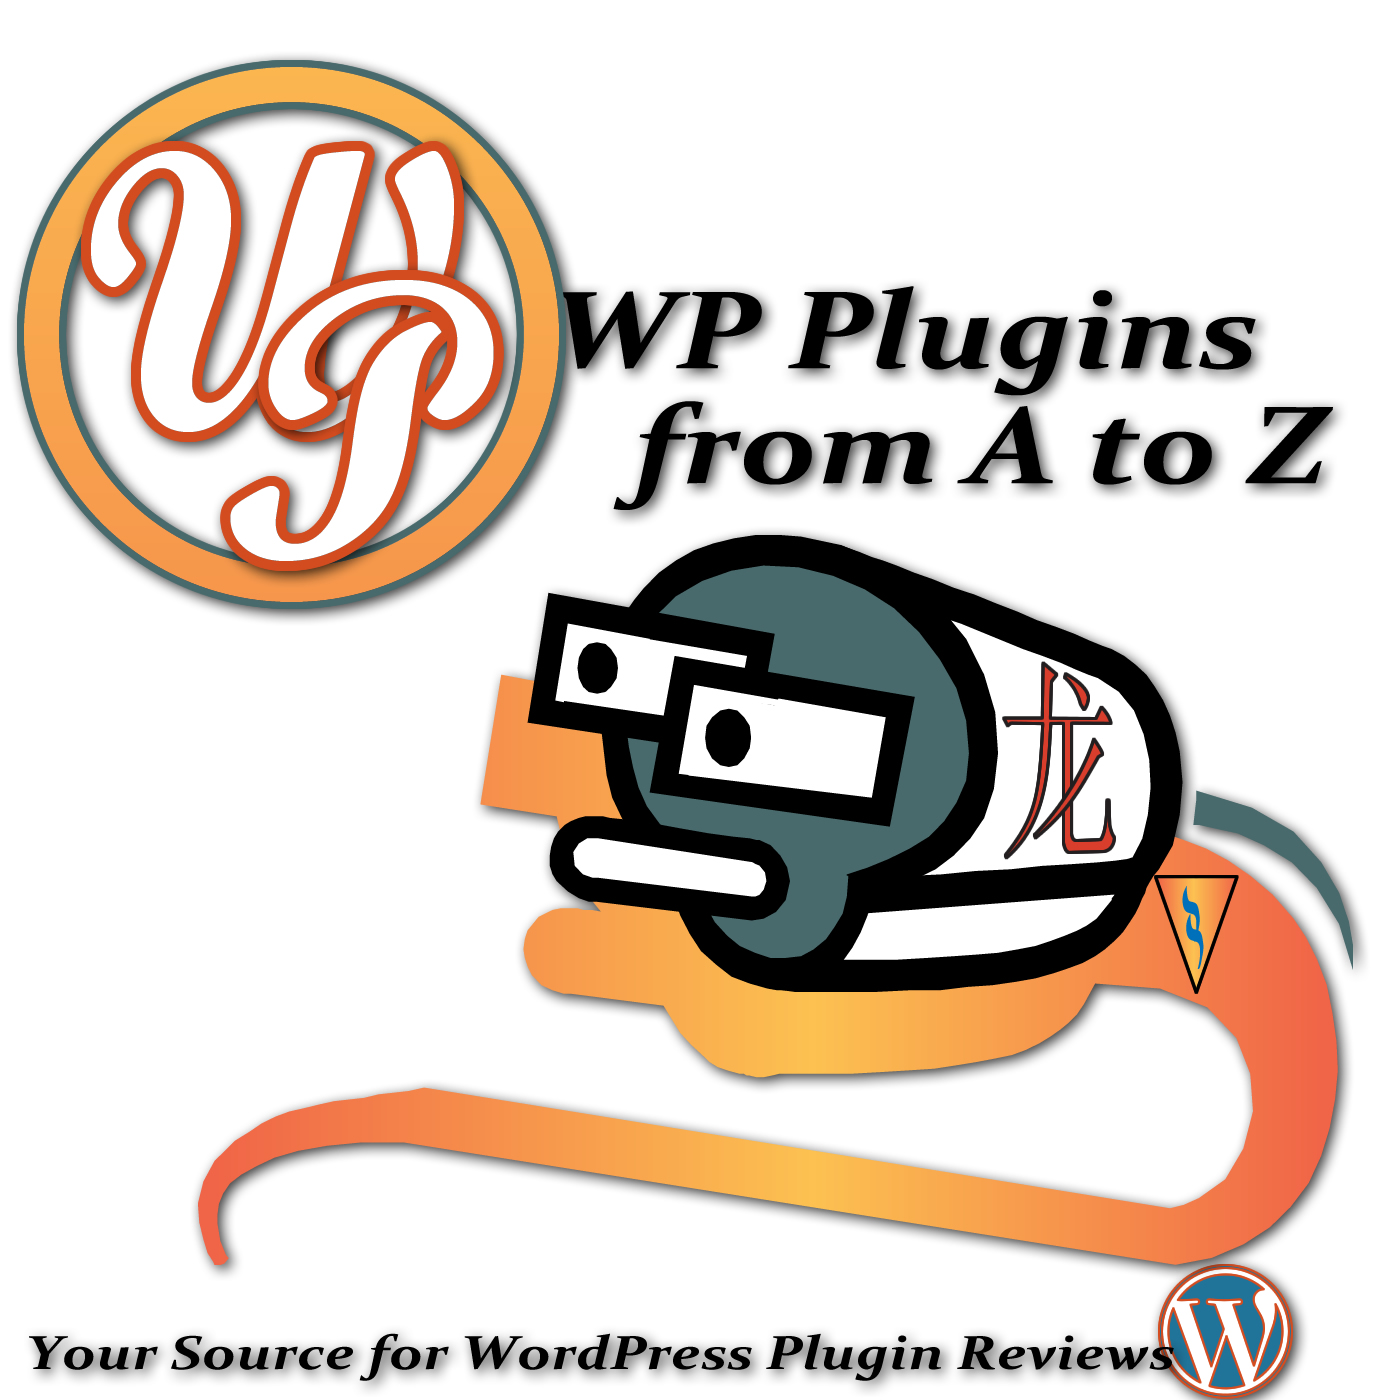 WordPress Plug-ins from A to Z